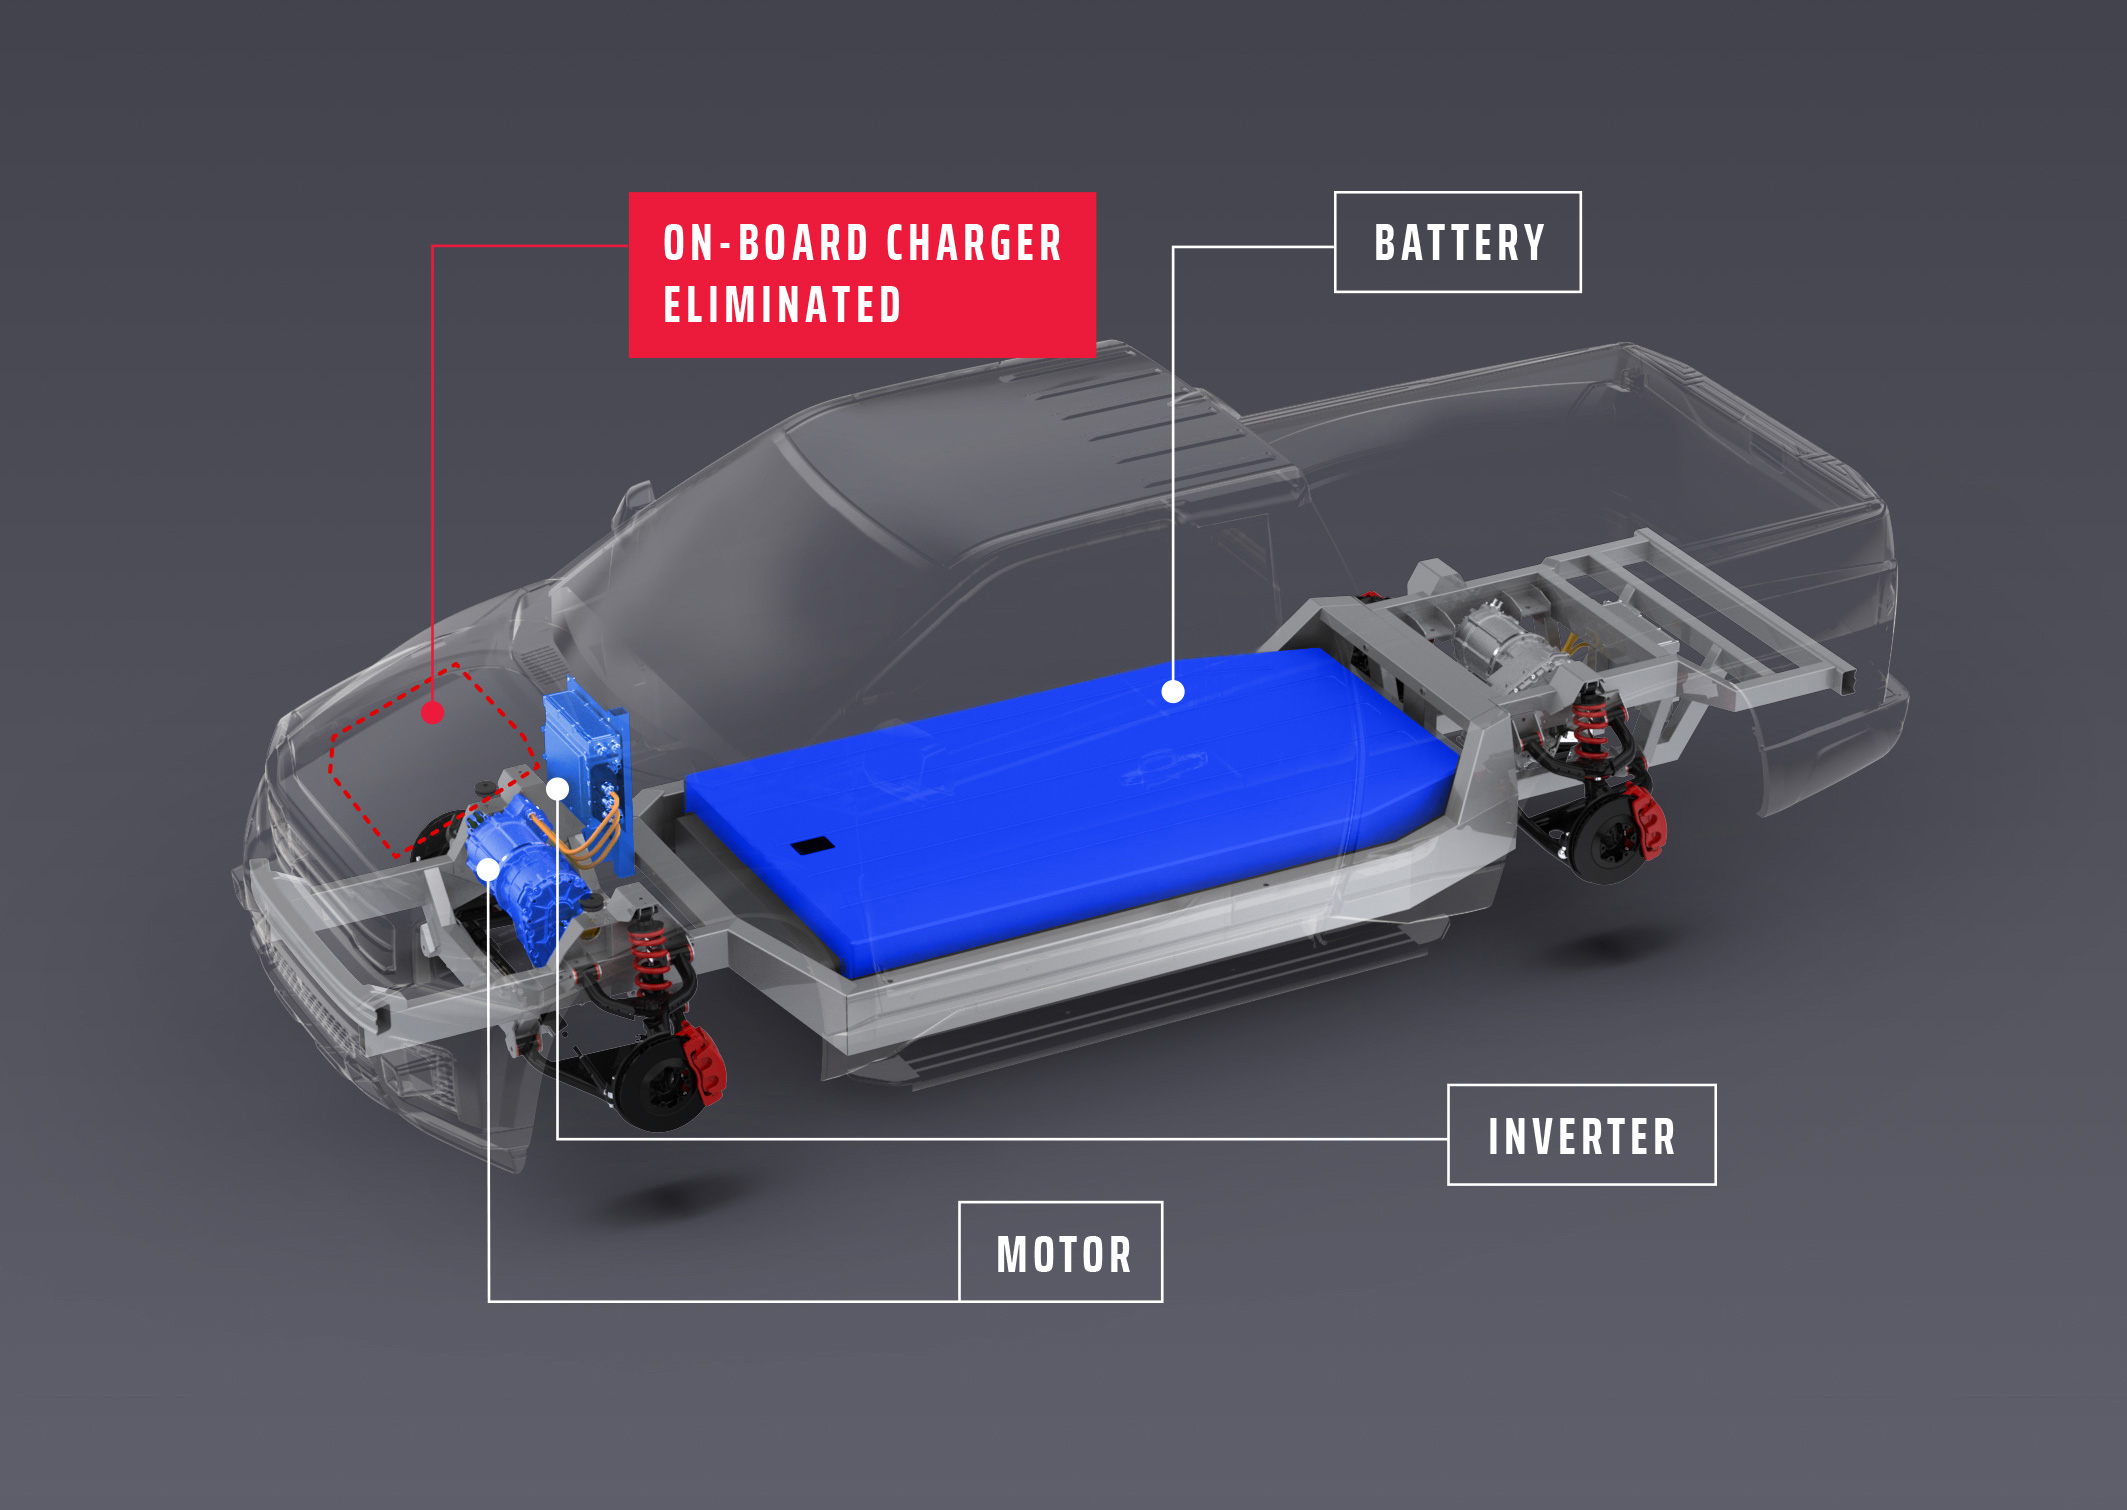 THE powertrain reimagined - Havelaar eliminates the need for on-board chargers.• less weight leads to better driving performance• fewer parts leads to improved reliability• lower cost is critical for the mass-market• more space for new technologies